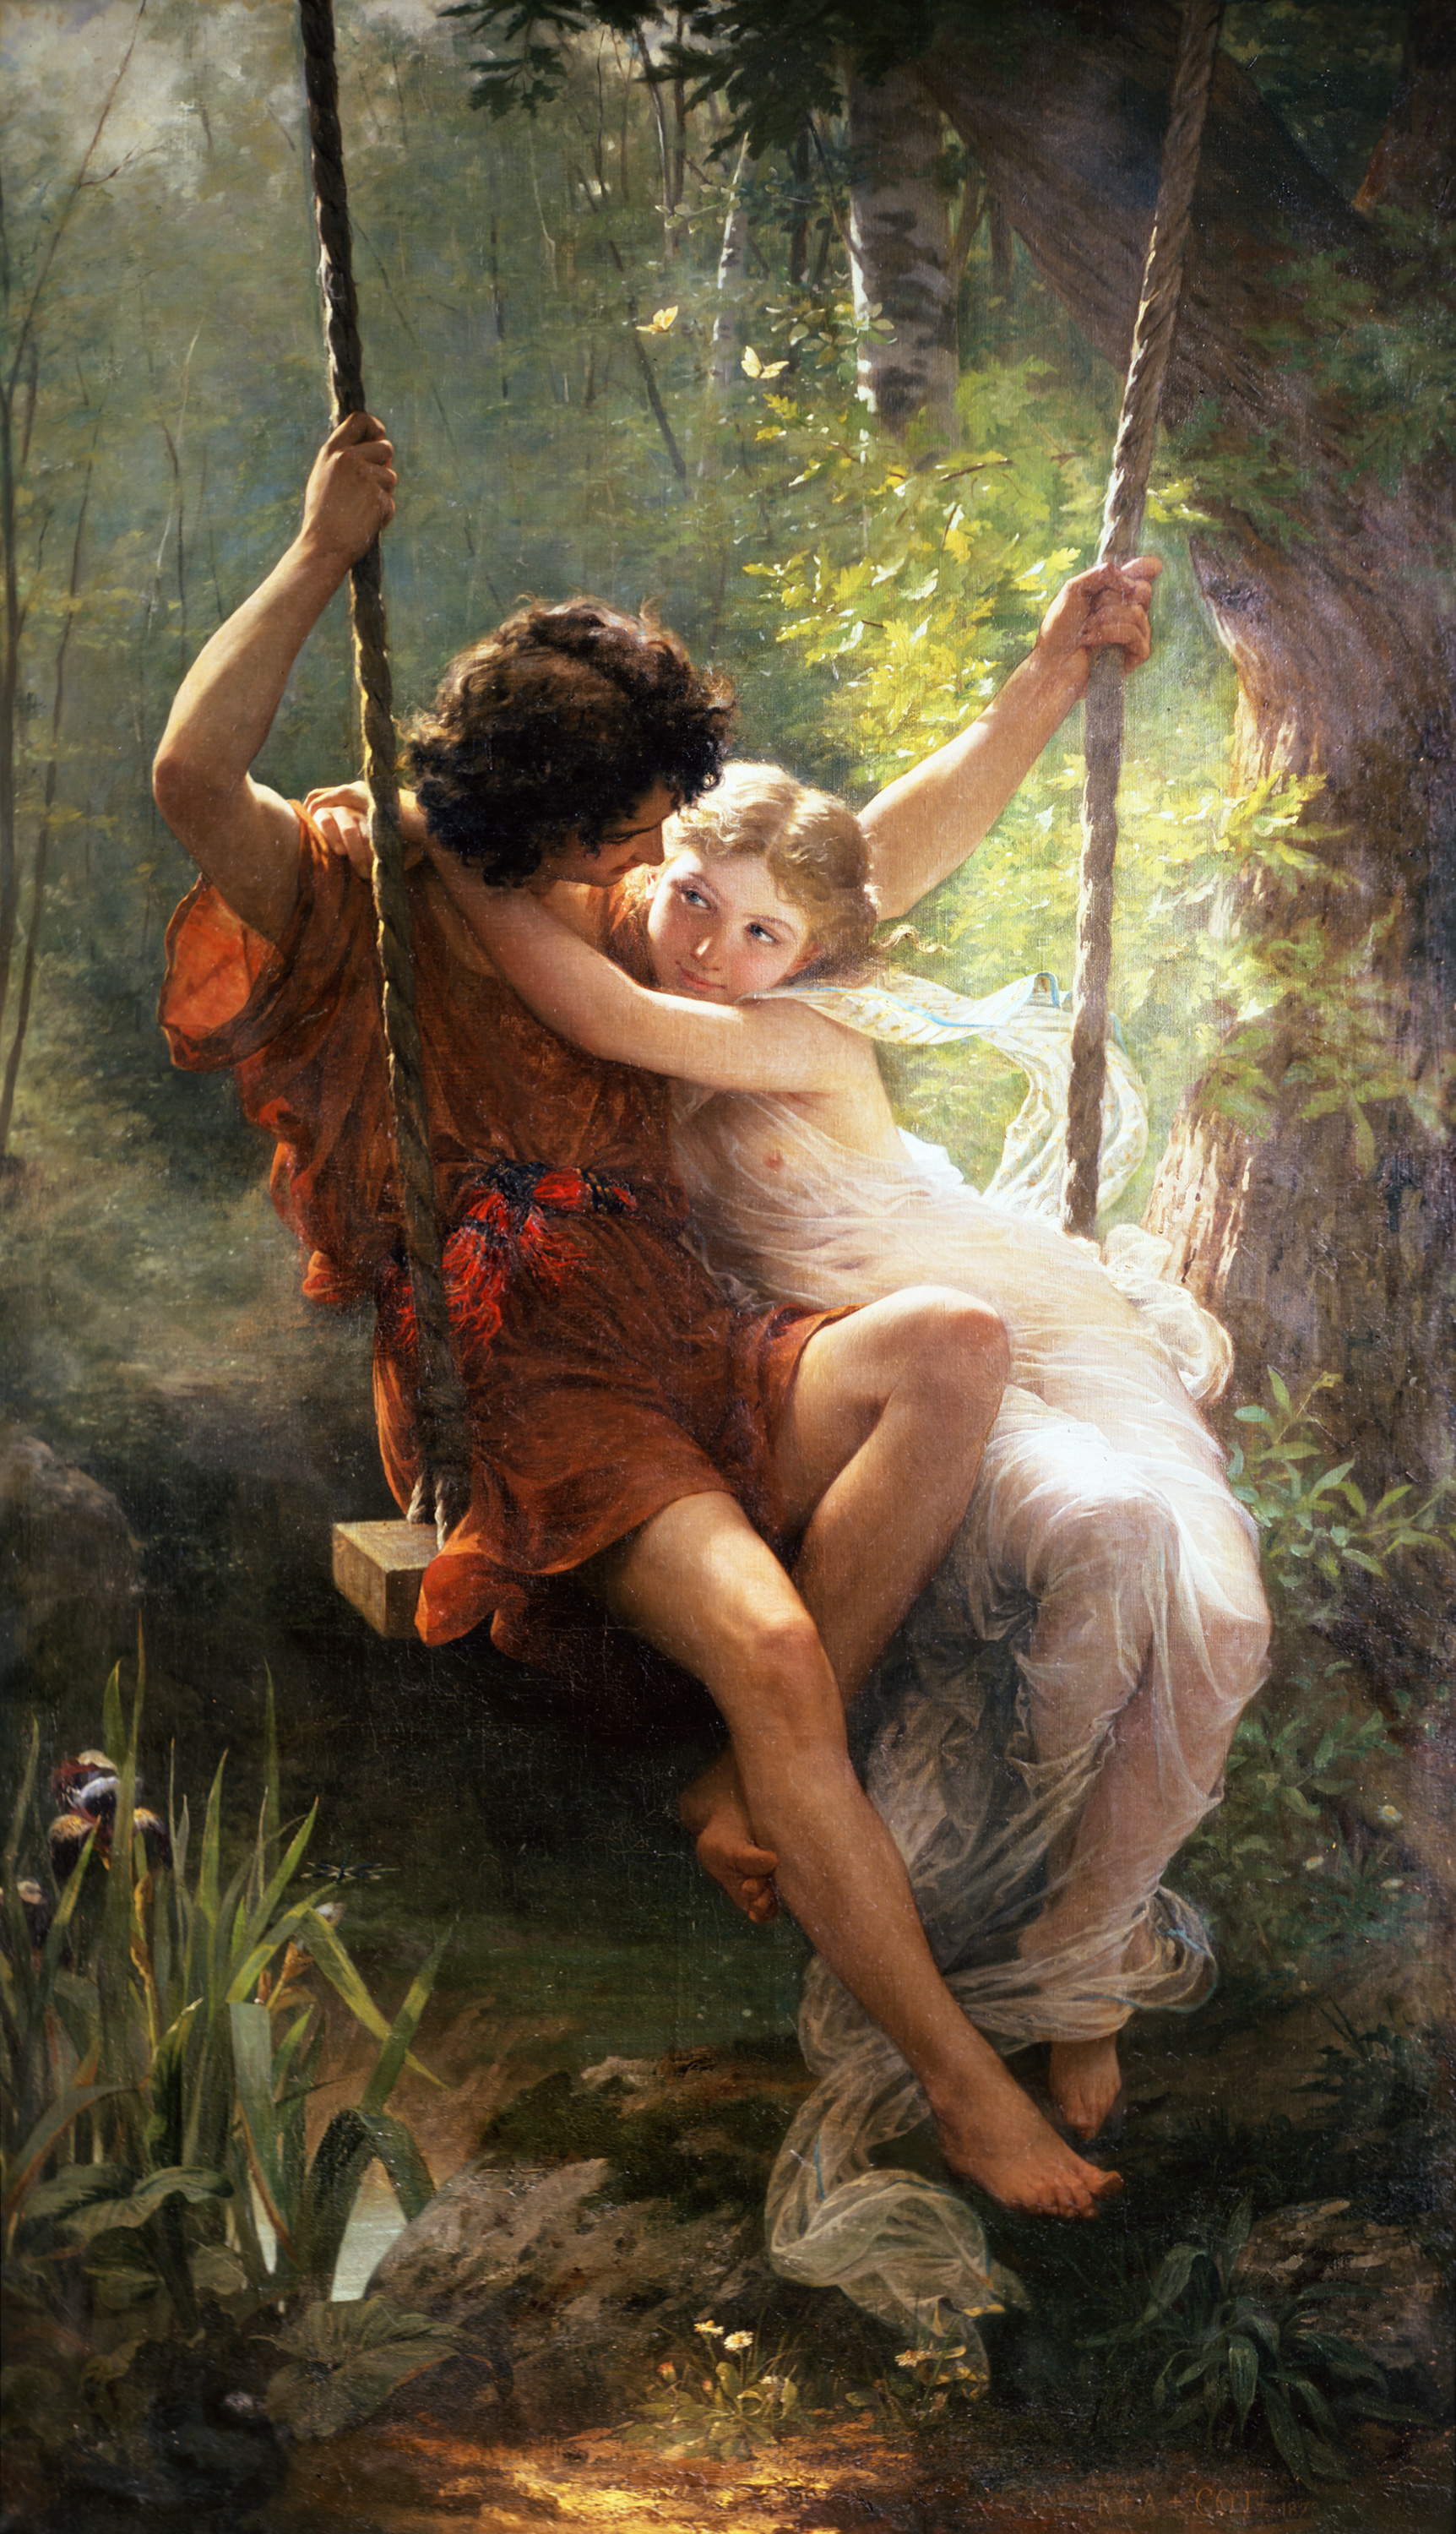 Pierre Auguste Cot [Public domain], via Wikimedia Commons